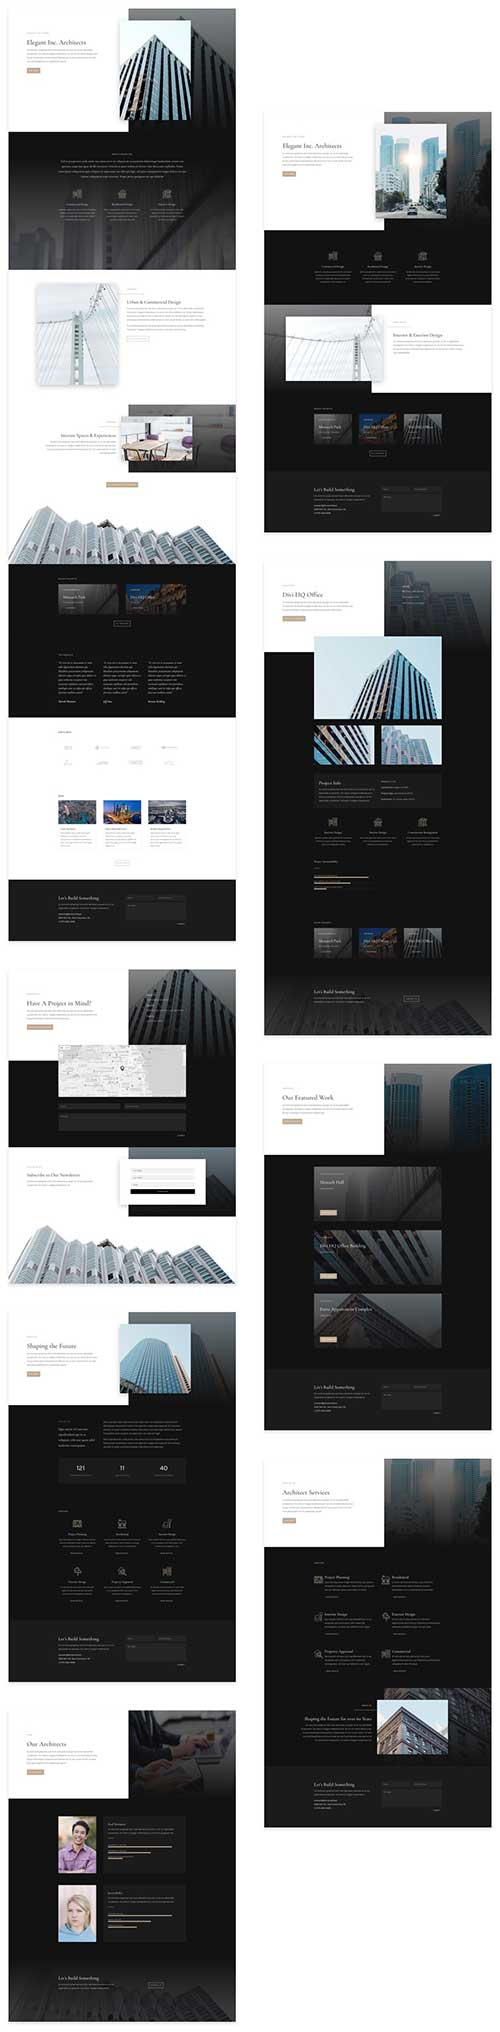 free layout for architect firm